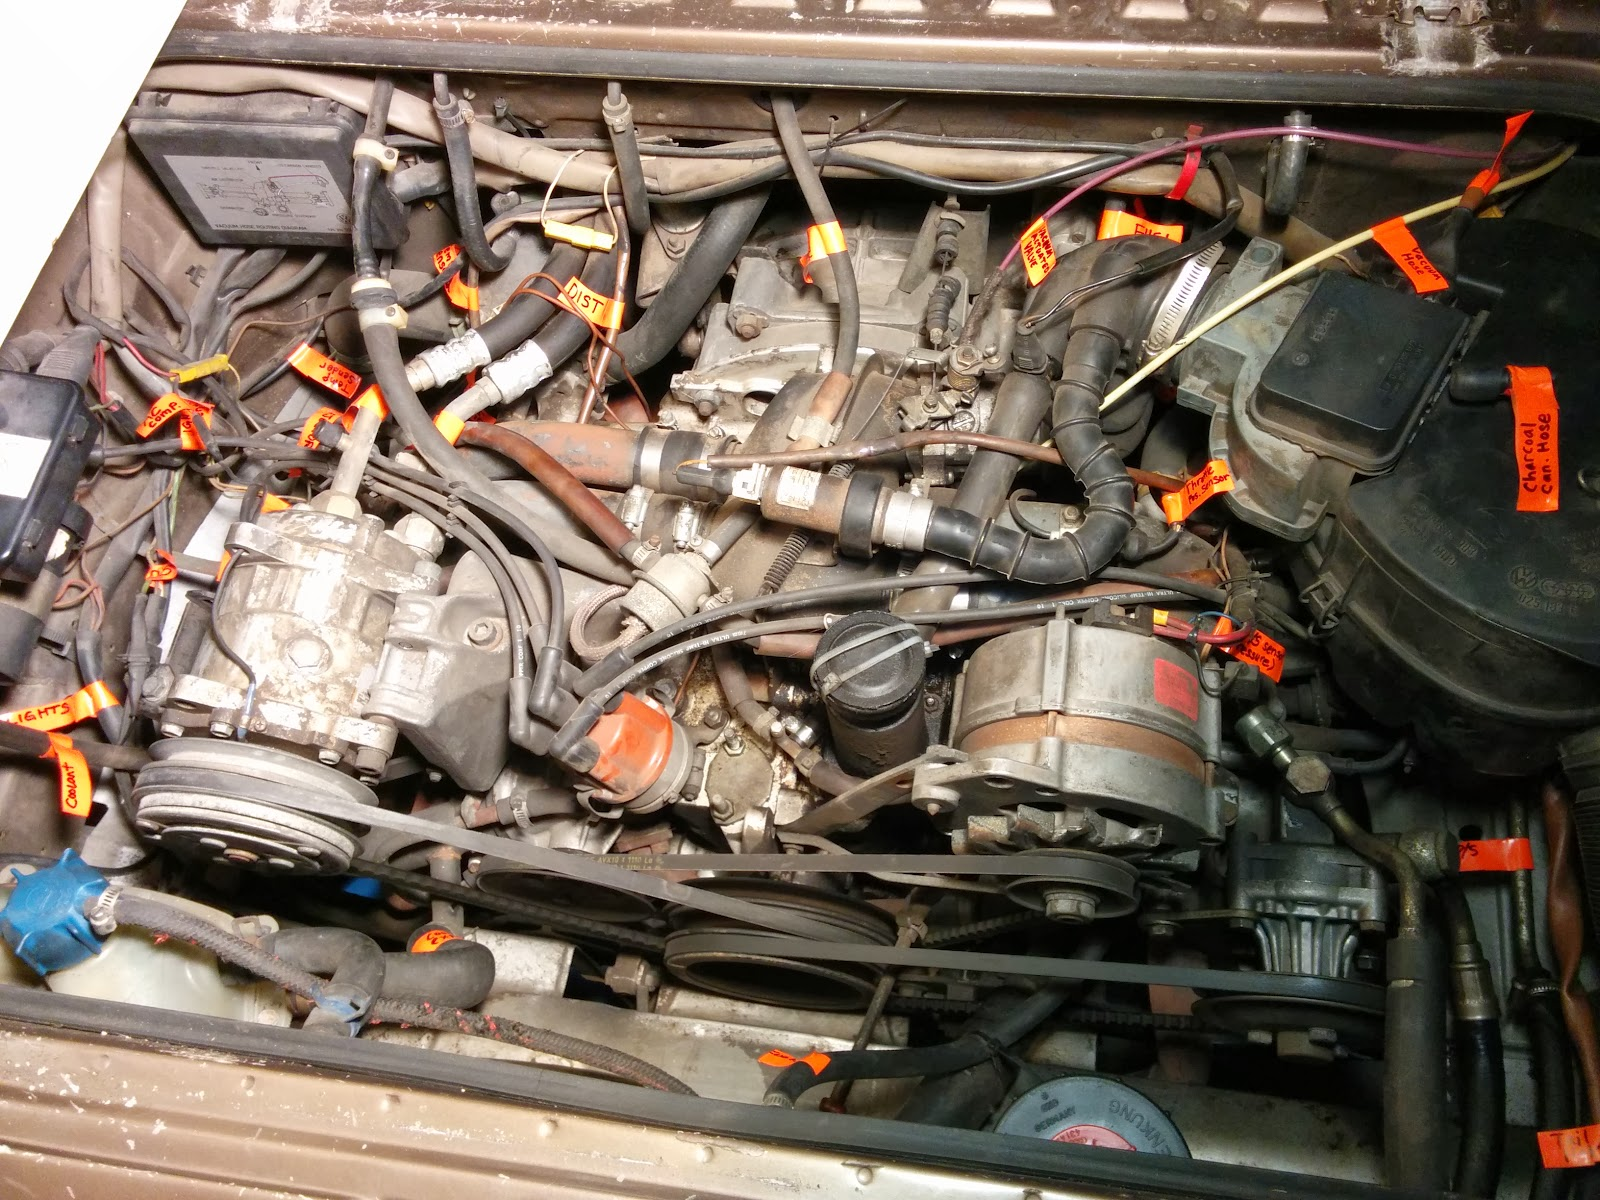 """I focused the labeling on the wiring harness and hoses that went through  the """"firewall"""" to the front of the van, so they are preserved when the  engine is ..."""